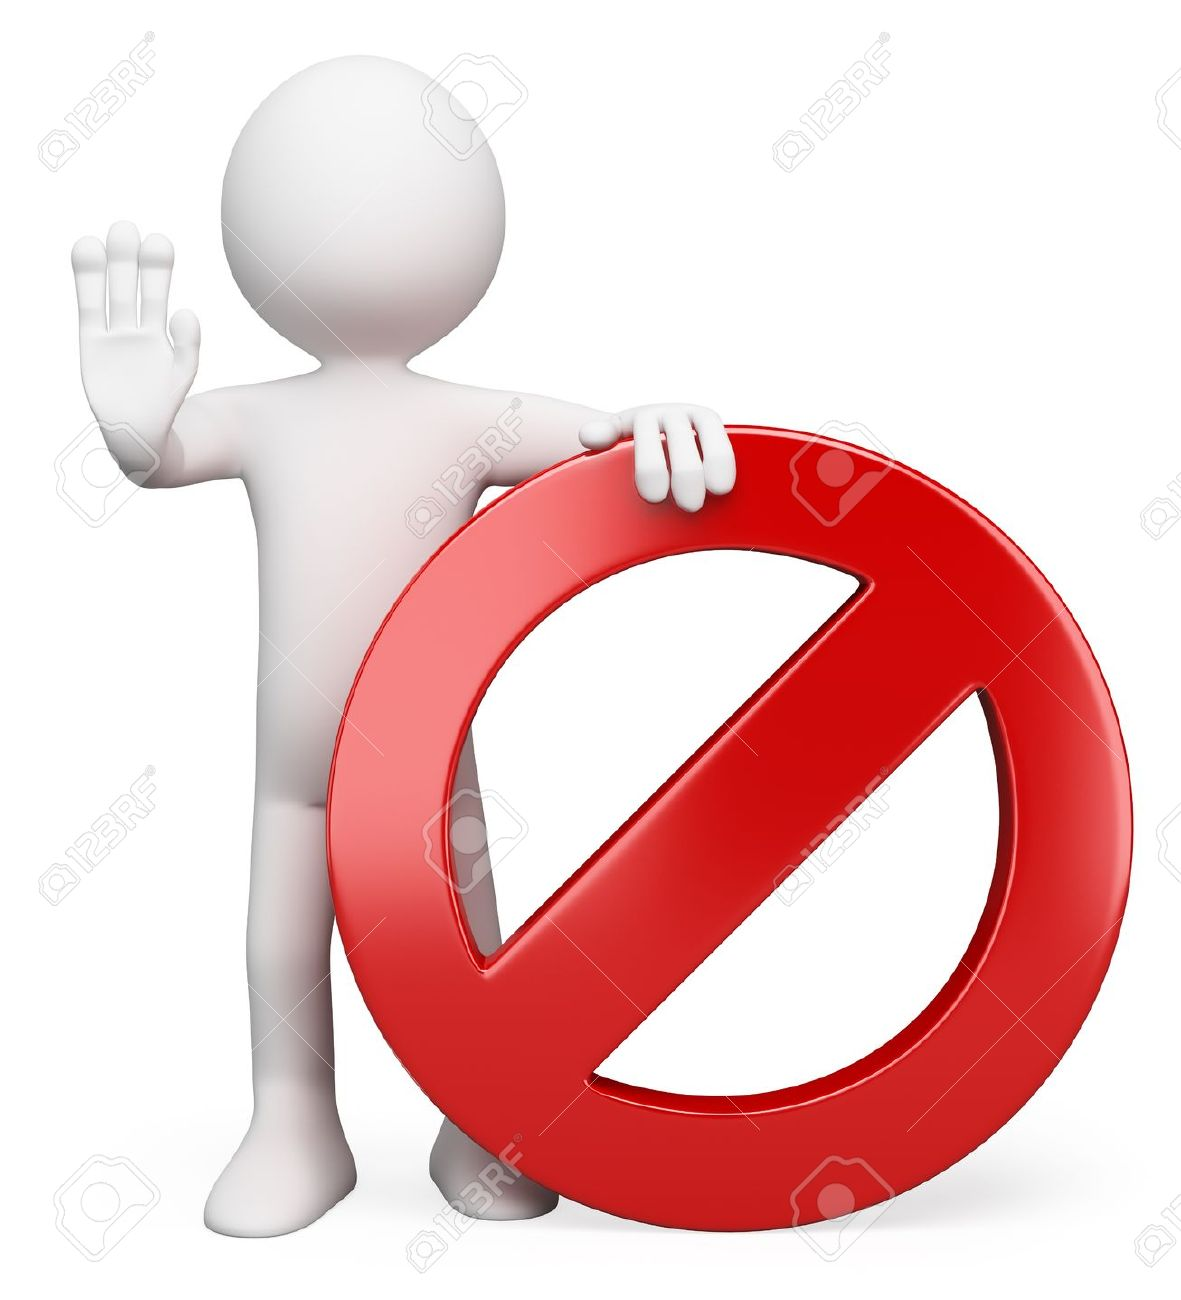 3d white person with a forbidden sign ordering to stop. 3d image. Isolated white background. Stock Photo - 18629626